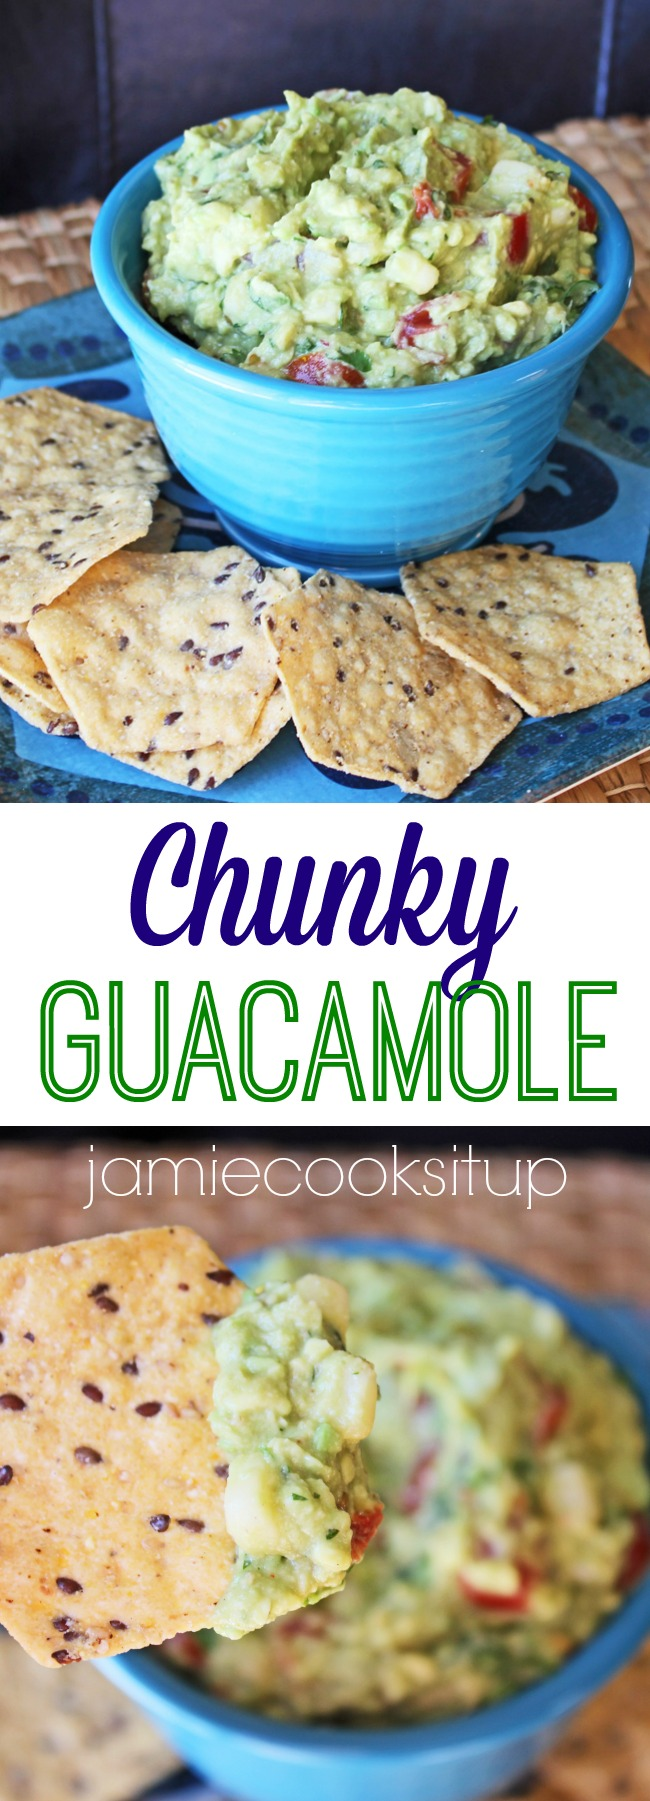 Chunky Guacamole Recipe from Jamie Cooks It Up!